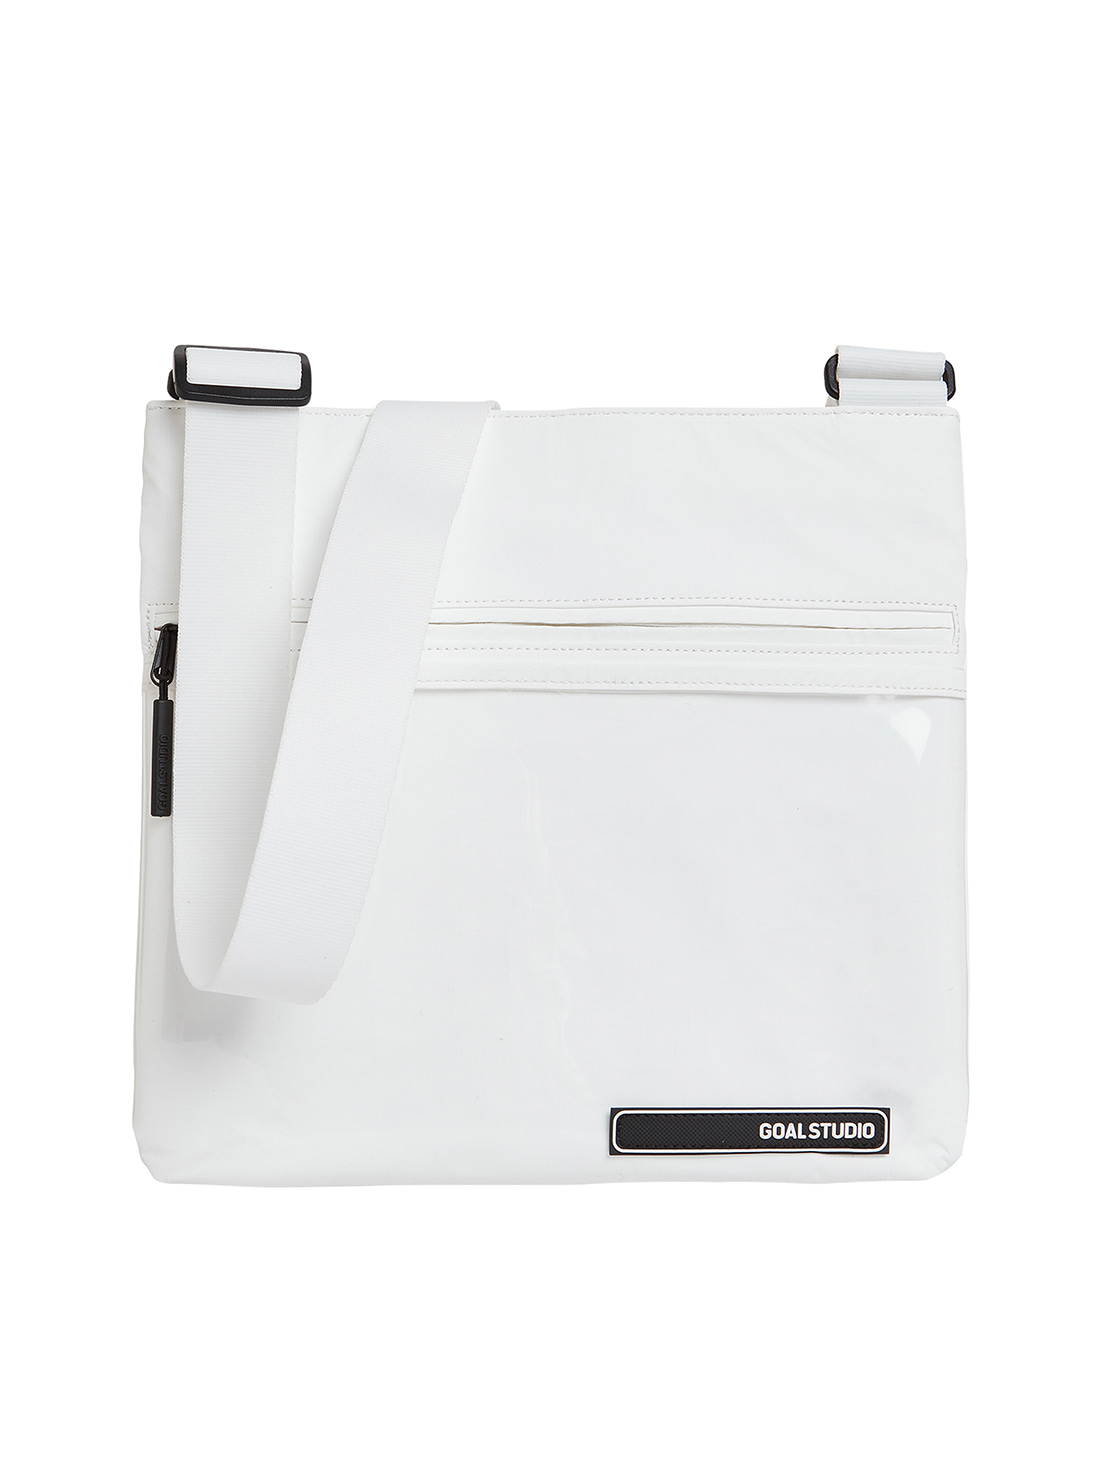 GOALSTUDIO LOGO WAPPEN SACOCHE BAG - WHITE